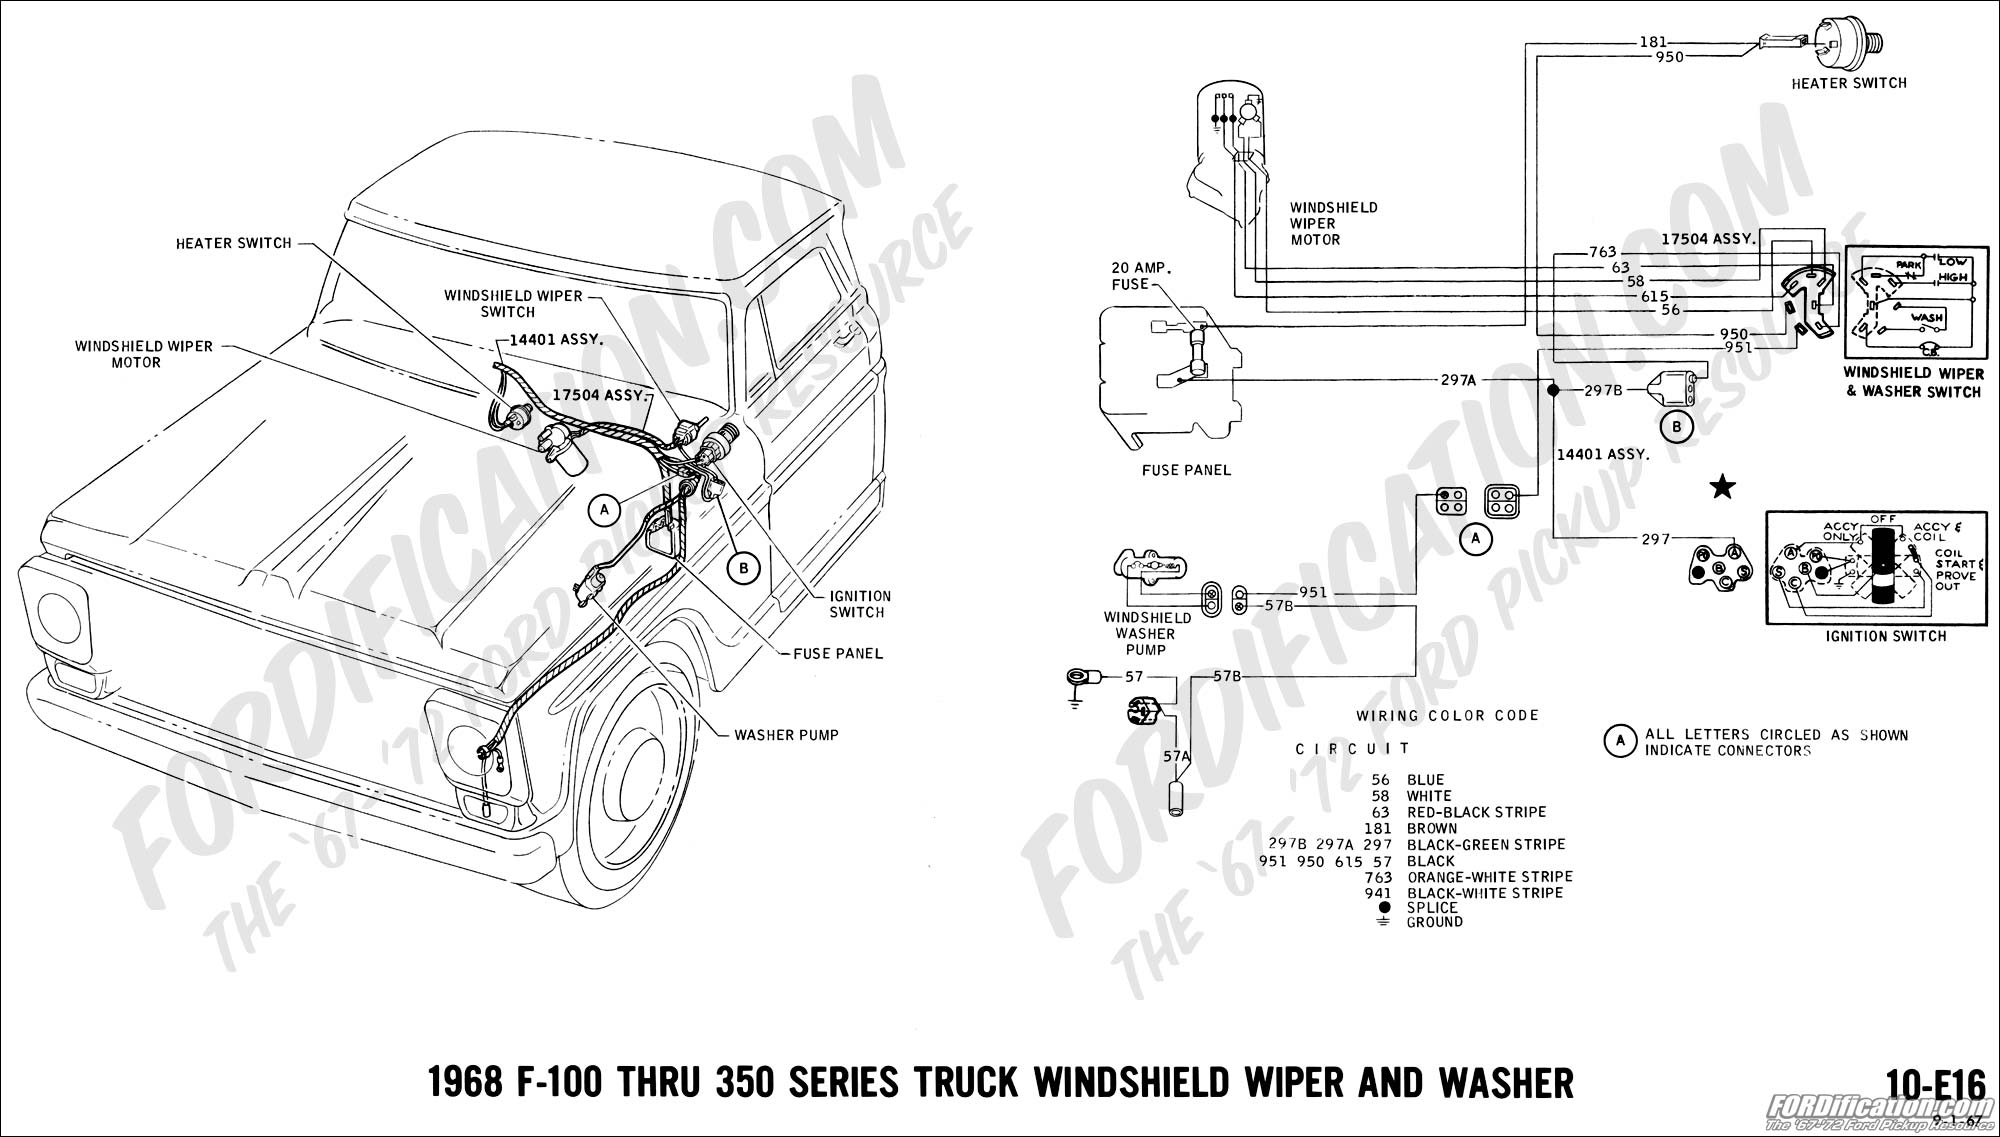 2004 Ford Ranger Wiring Schematics Auto Electrical Wiring Diagram 1994 F150  Backup Light Wiring Diagram 1994 F150 Horn Wiring Diagram